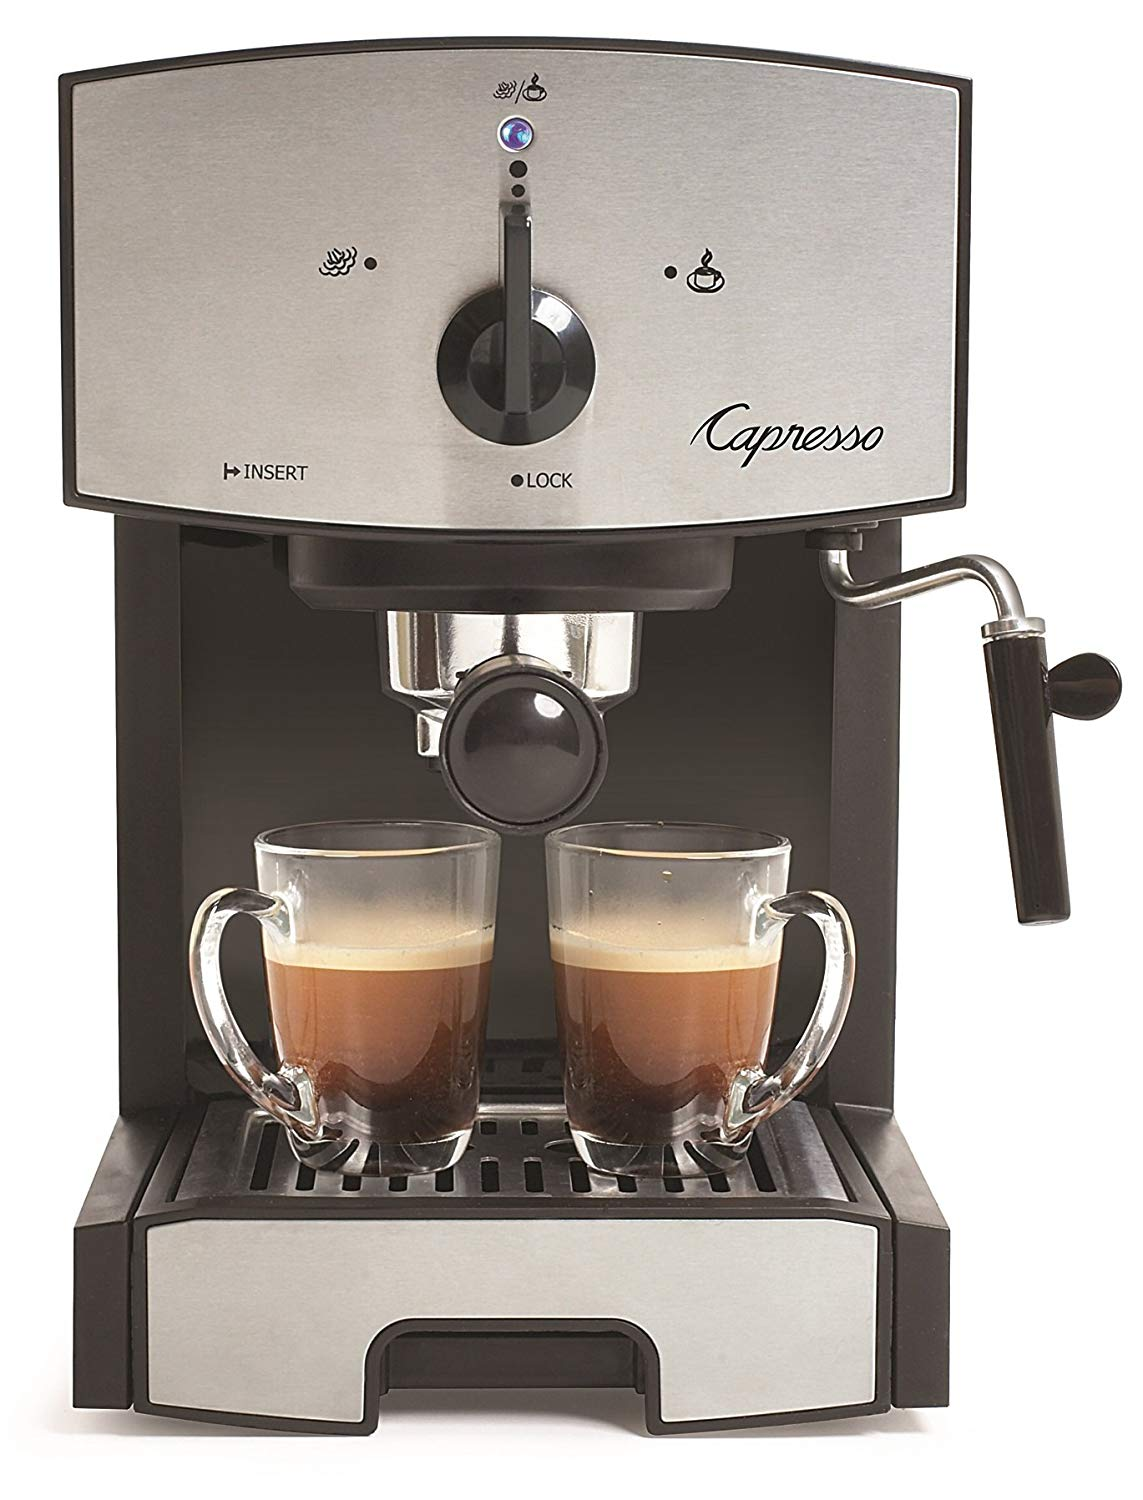 Capresso 117.05 Stainless Steel Pump Espresso and Cappuccino Machine EC50